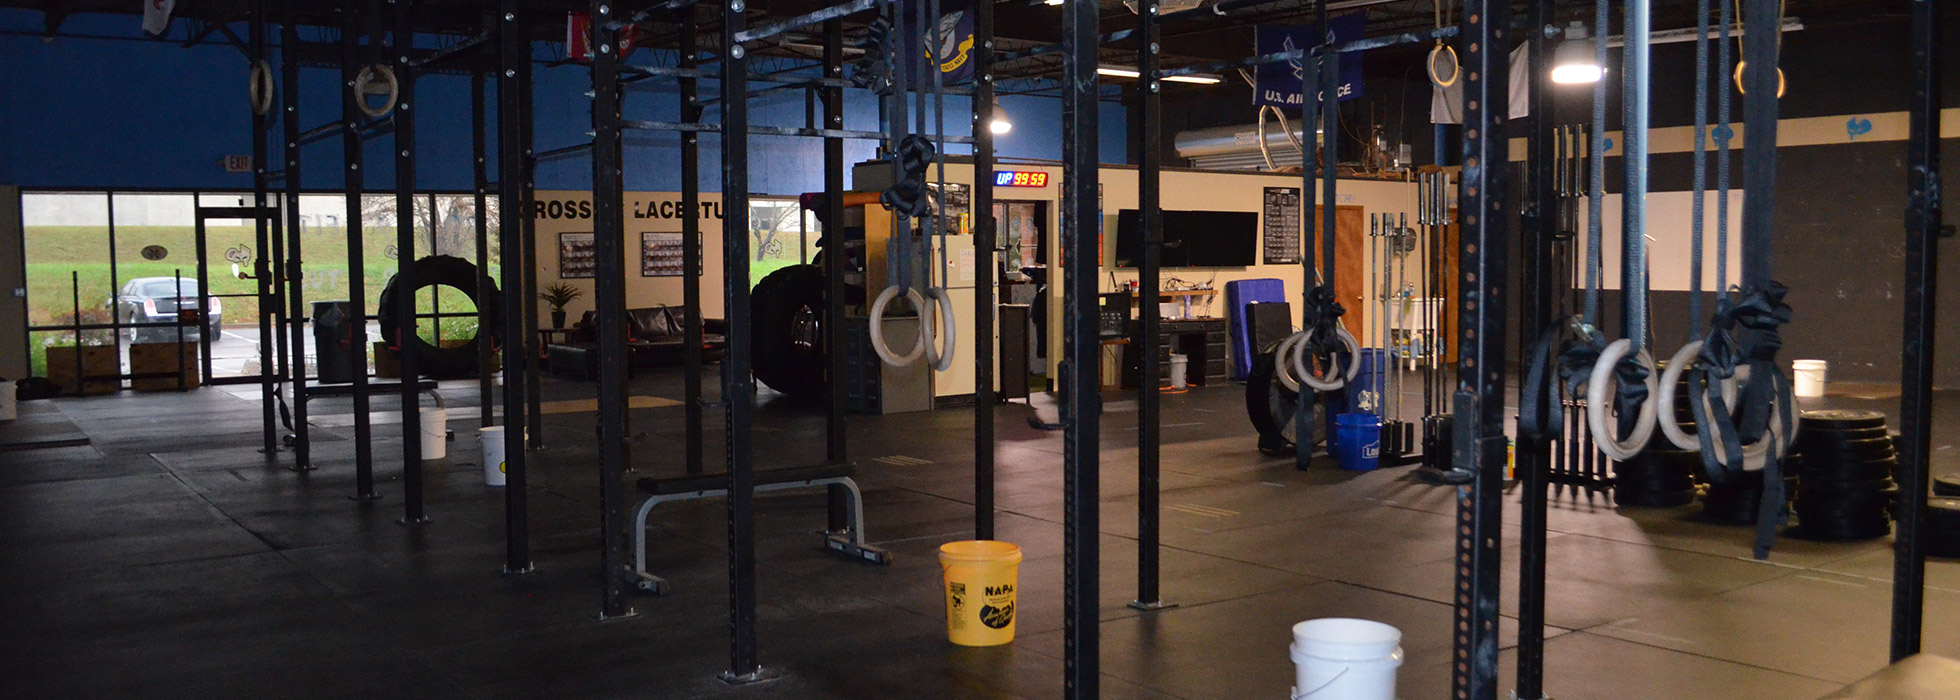 Looking For The Best Gym Near By? - CrossFit Lacertus